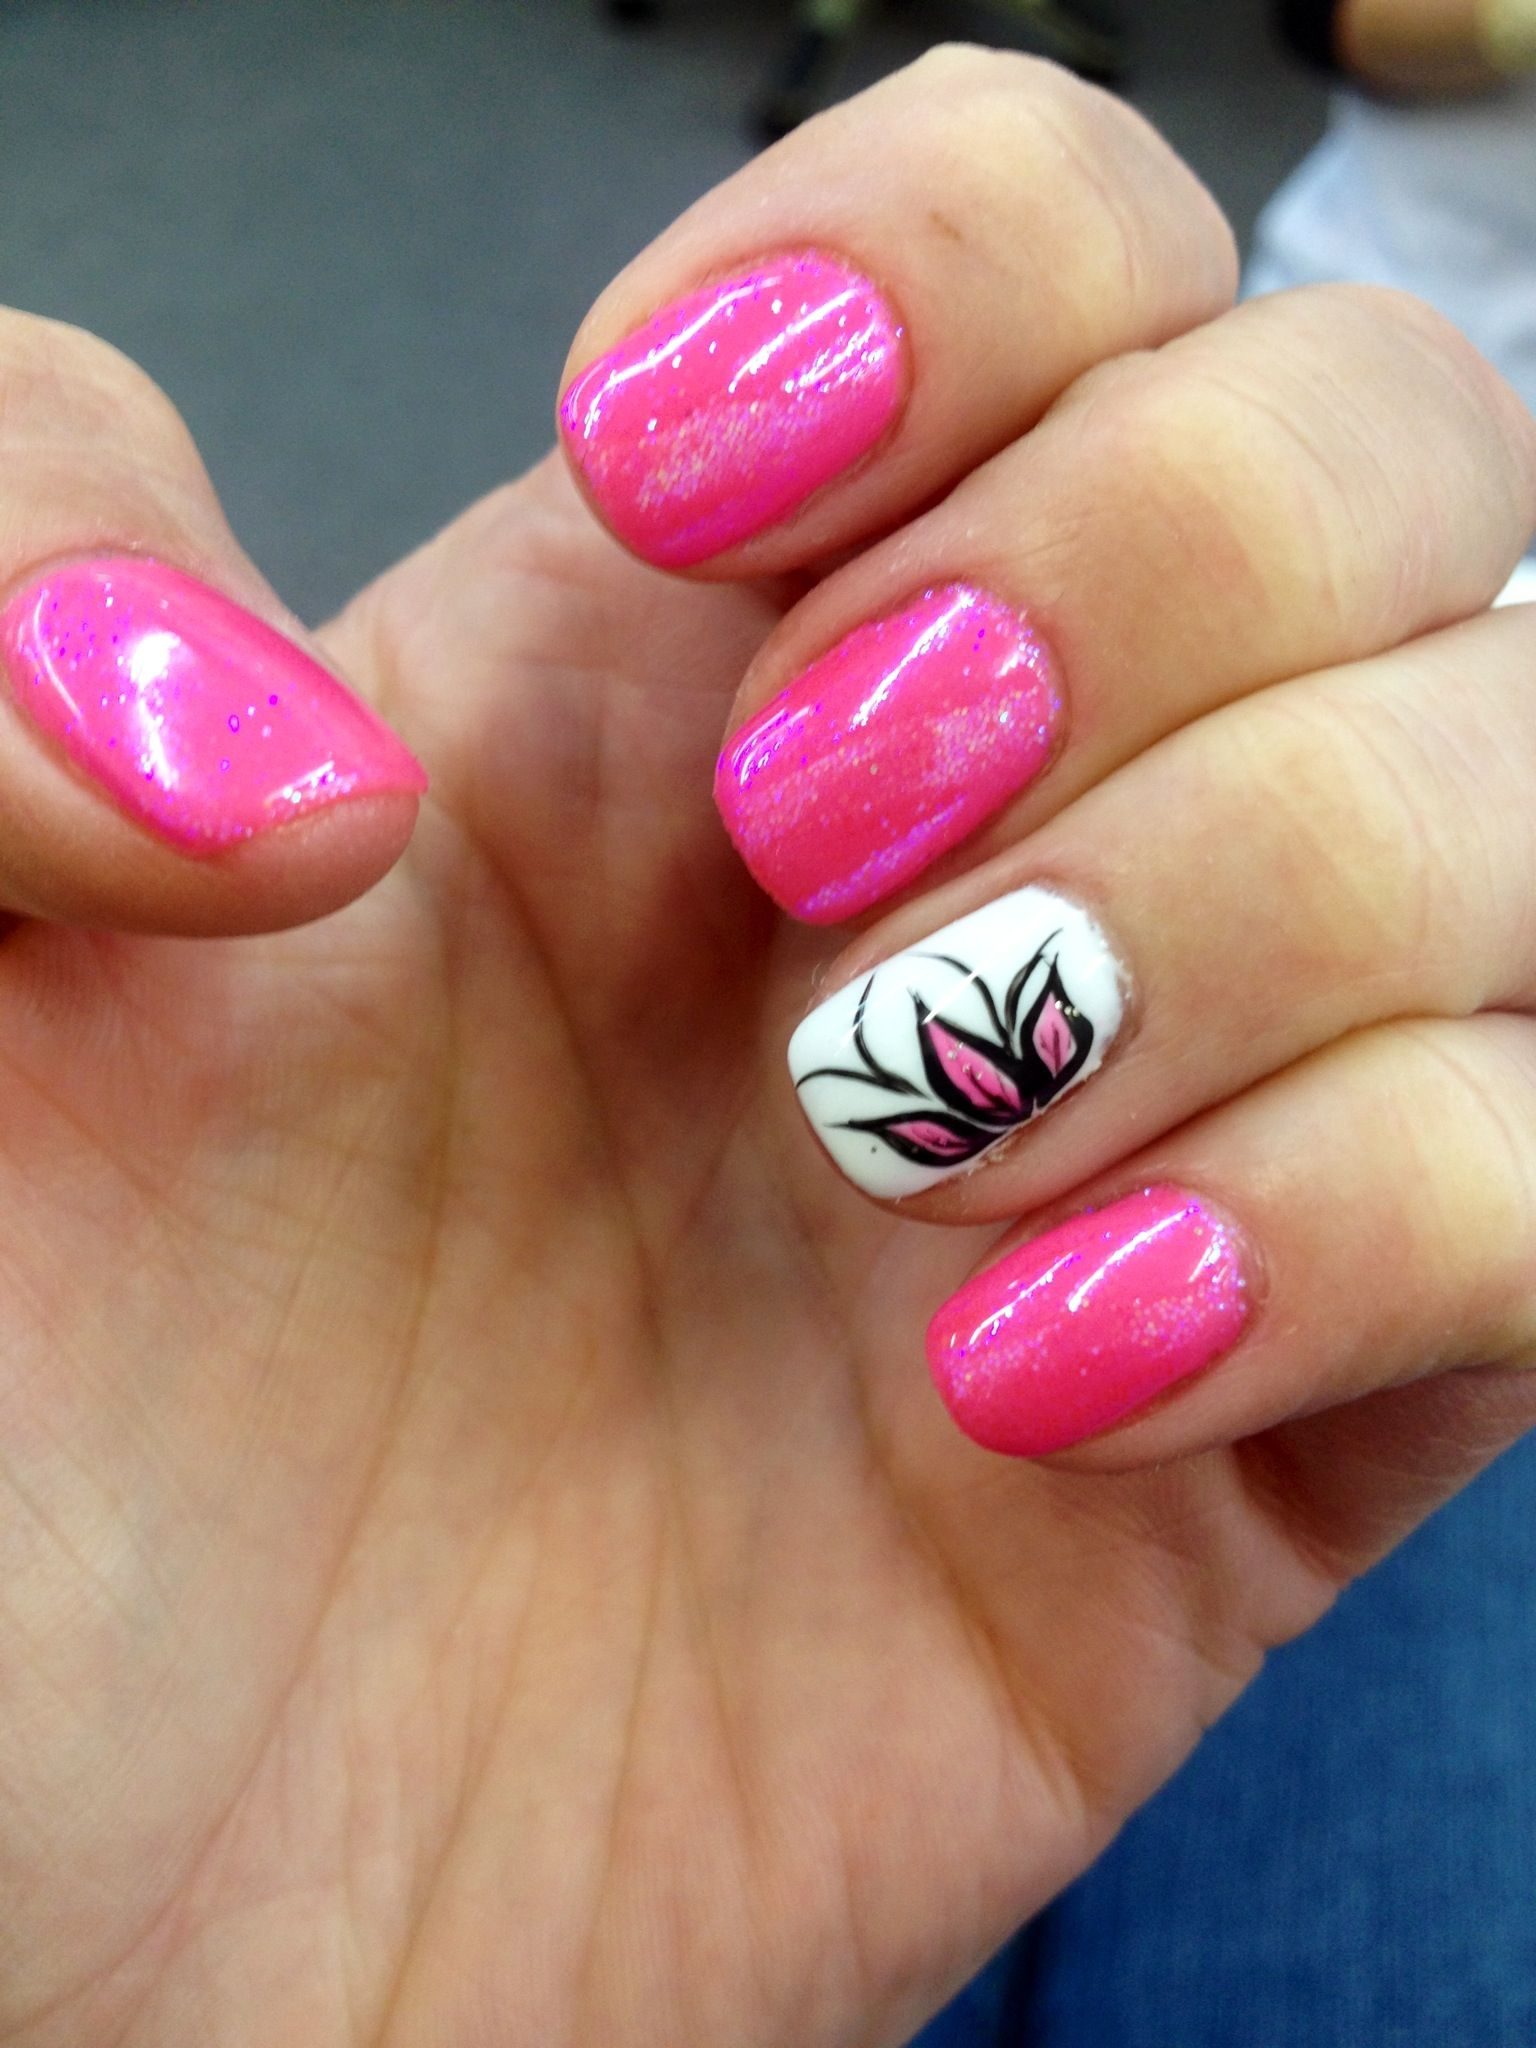 Shellac Nail Design Nail Art Nail Ideas Gellac Pink Flower